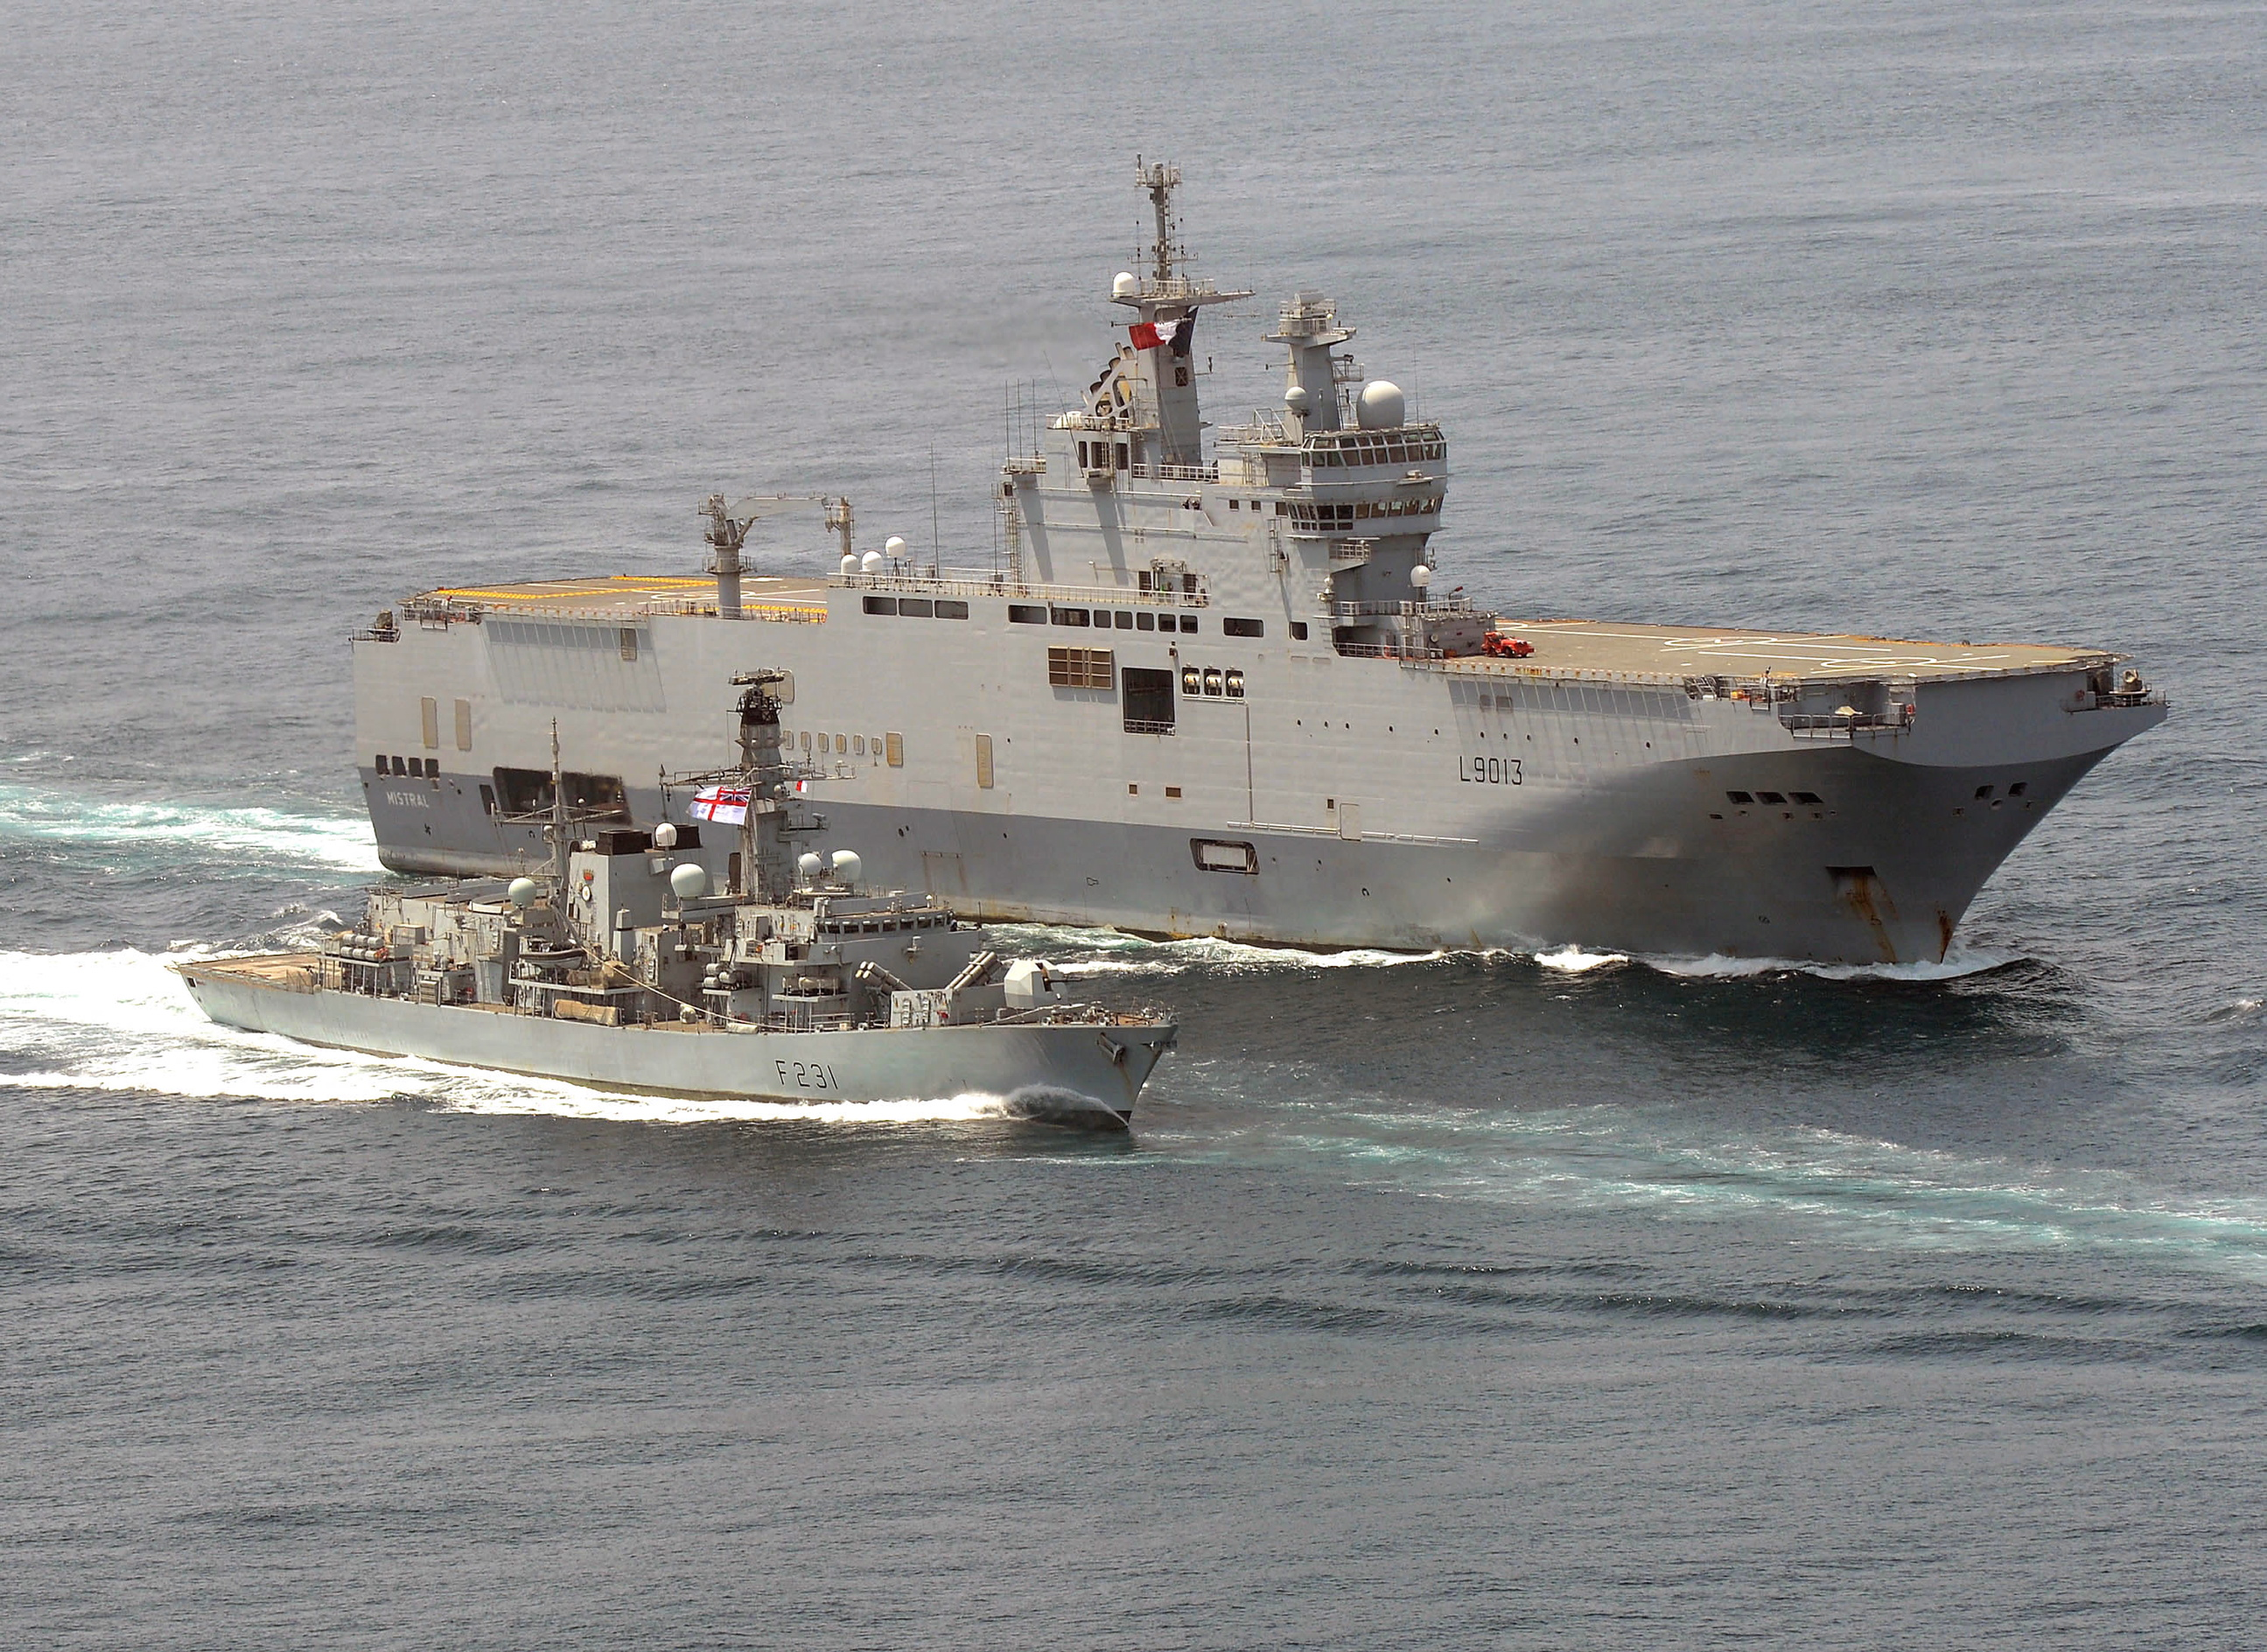 filehms argyll with the french ship fs mistral mod 45155266jpg